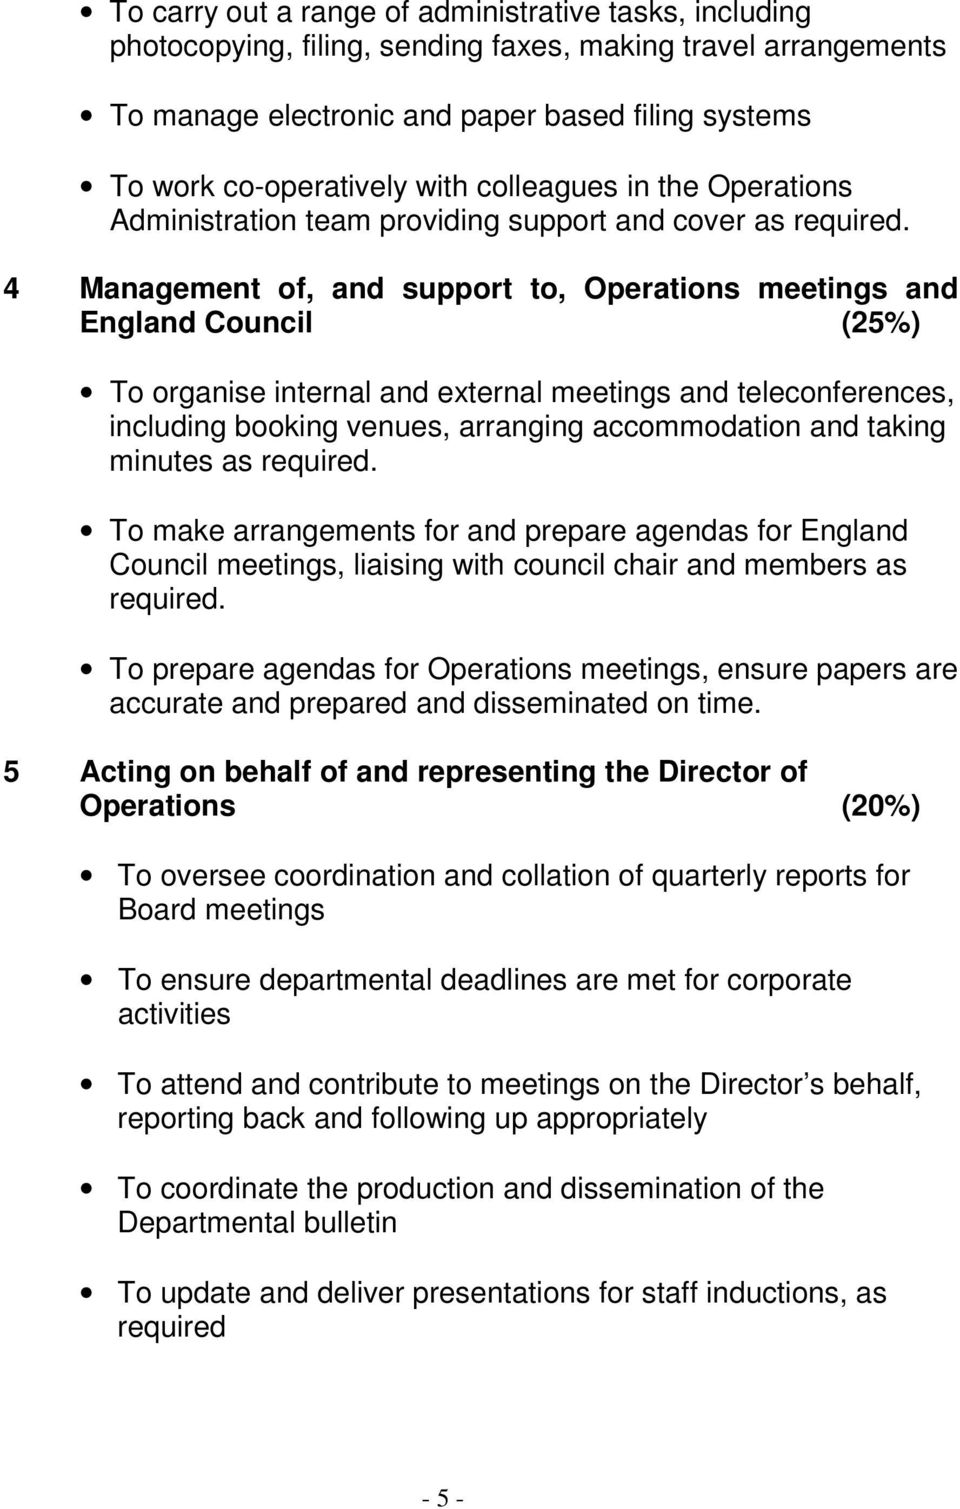 4 Management of, and support to, meetings and England Council (25%) To organise internal and external meetings and teleconferences, including booking venues, arranging accommodation and taking